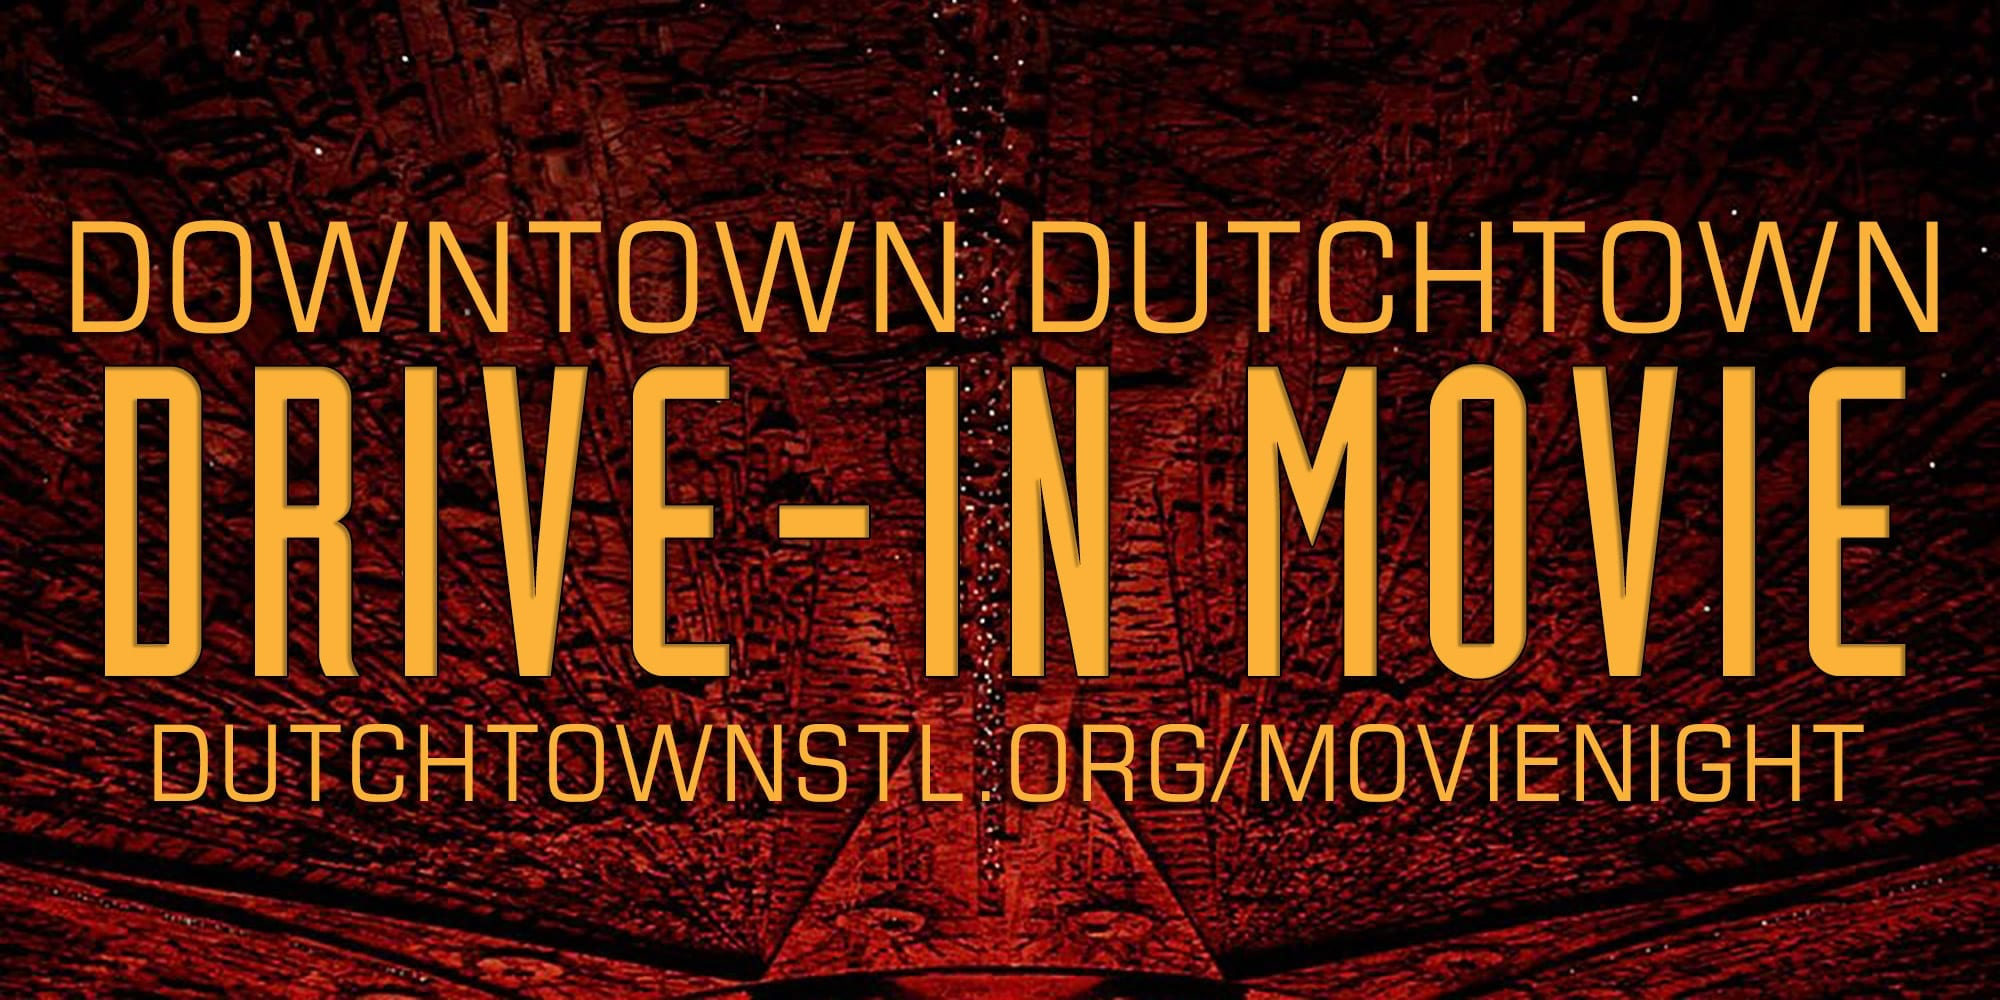 Downtown Dutchtown Drive-In Movie